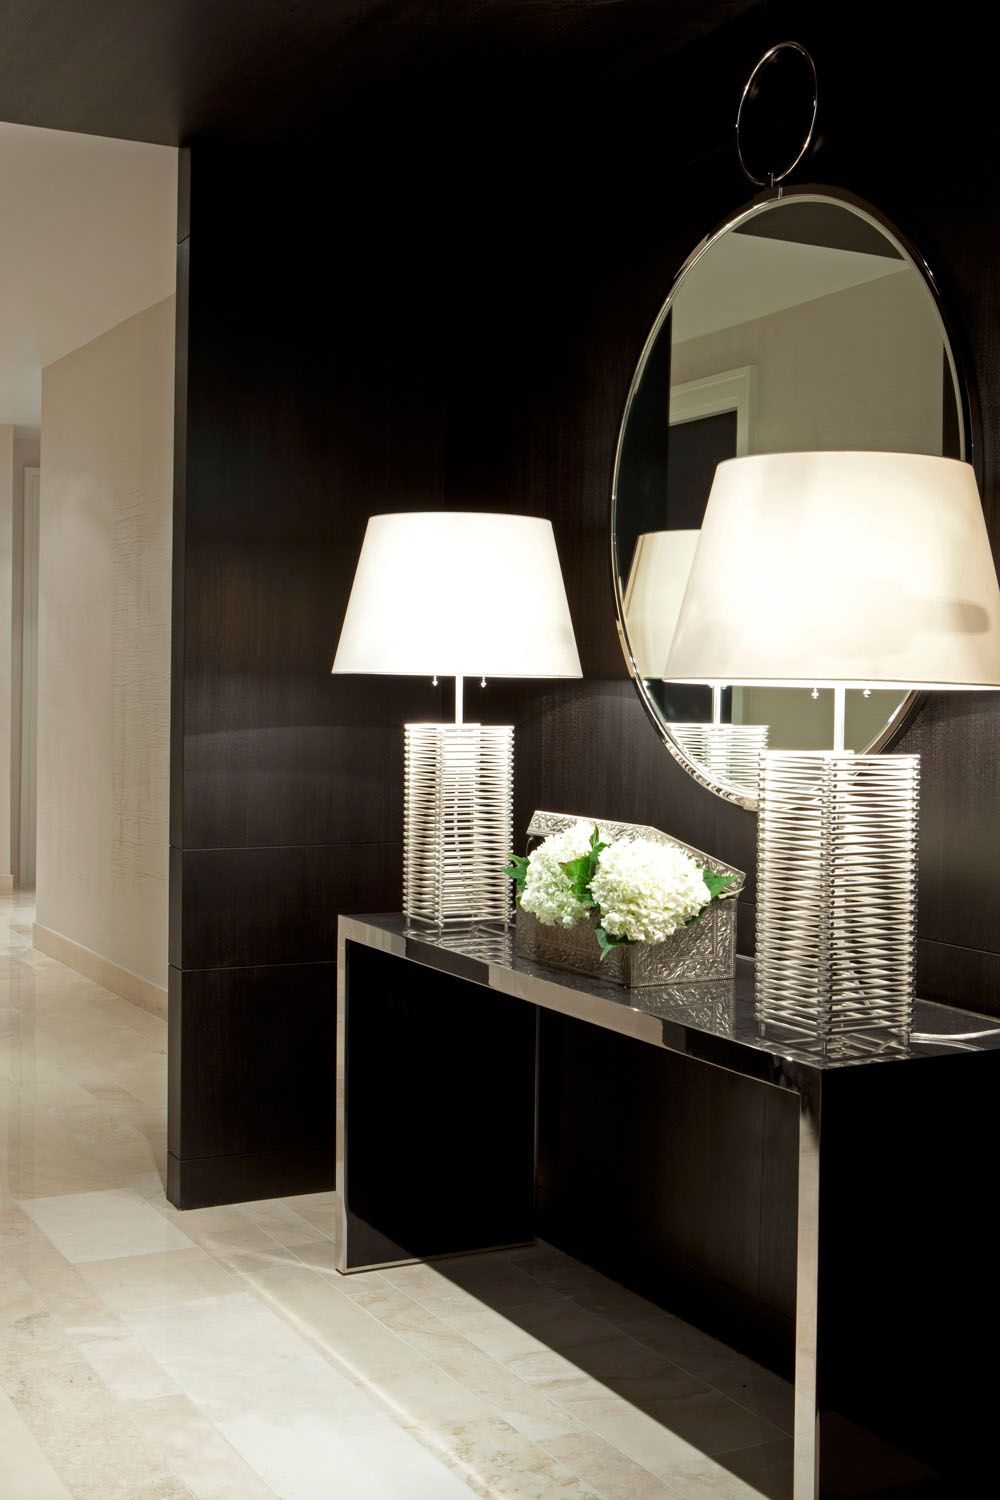 Foyer hallway lighting traditional entry chicago by tower - Love The Whole Look Lamps Mirror Against The Black Wall